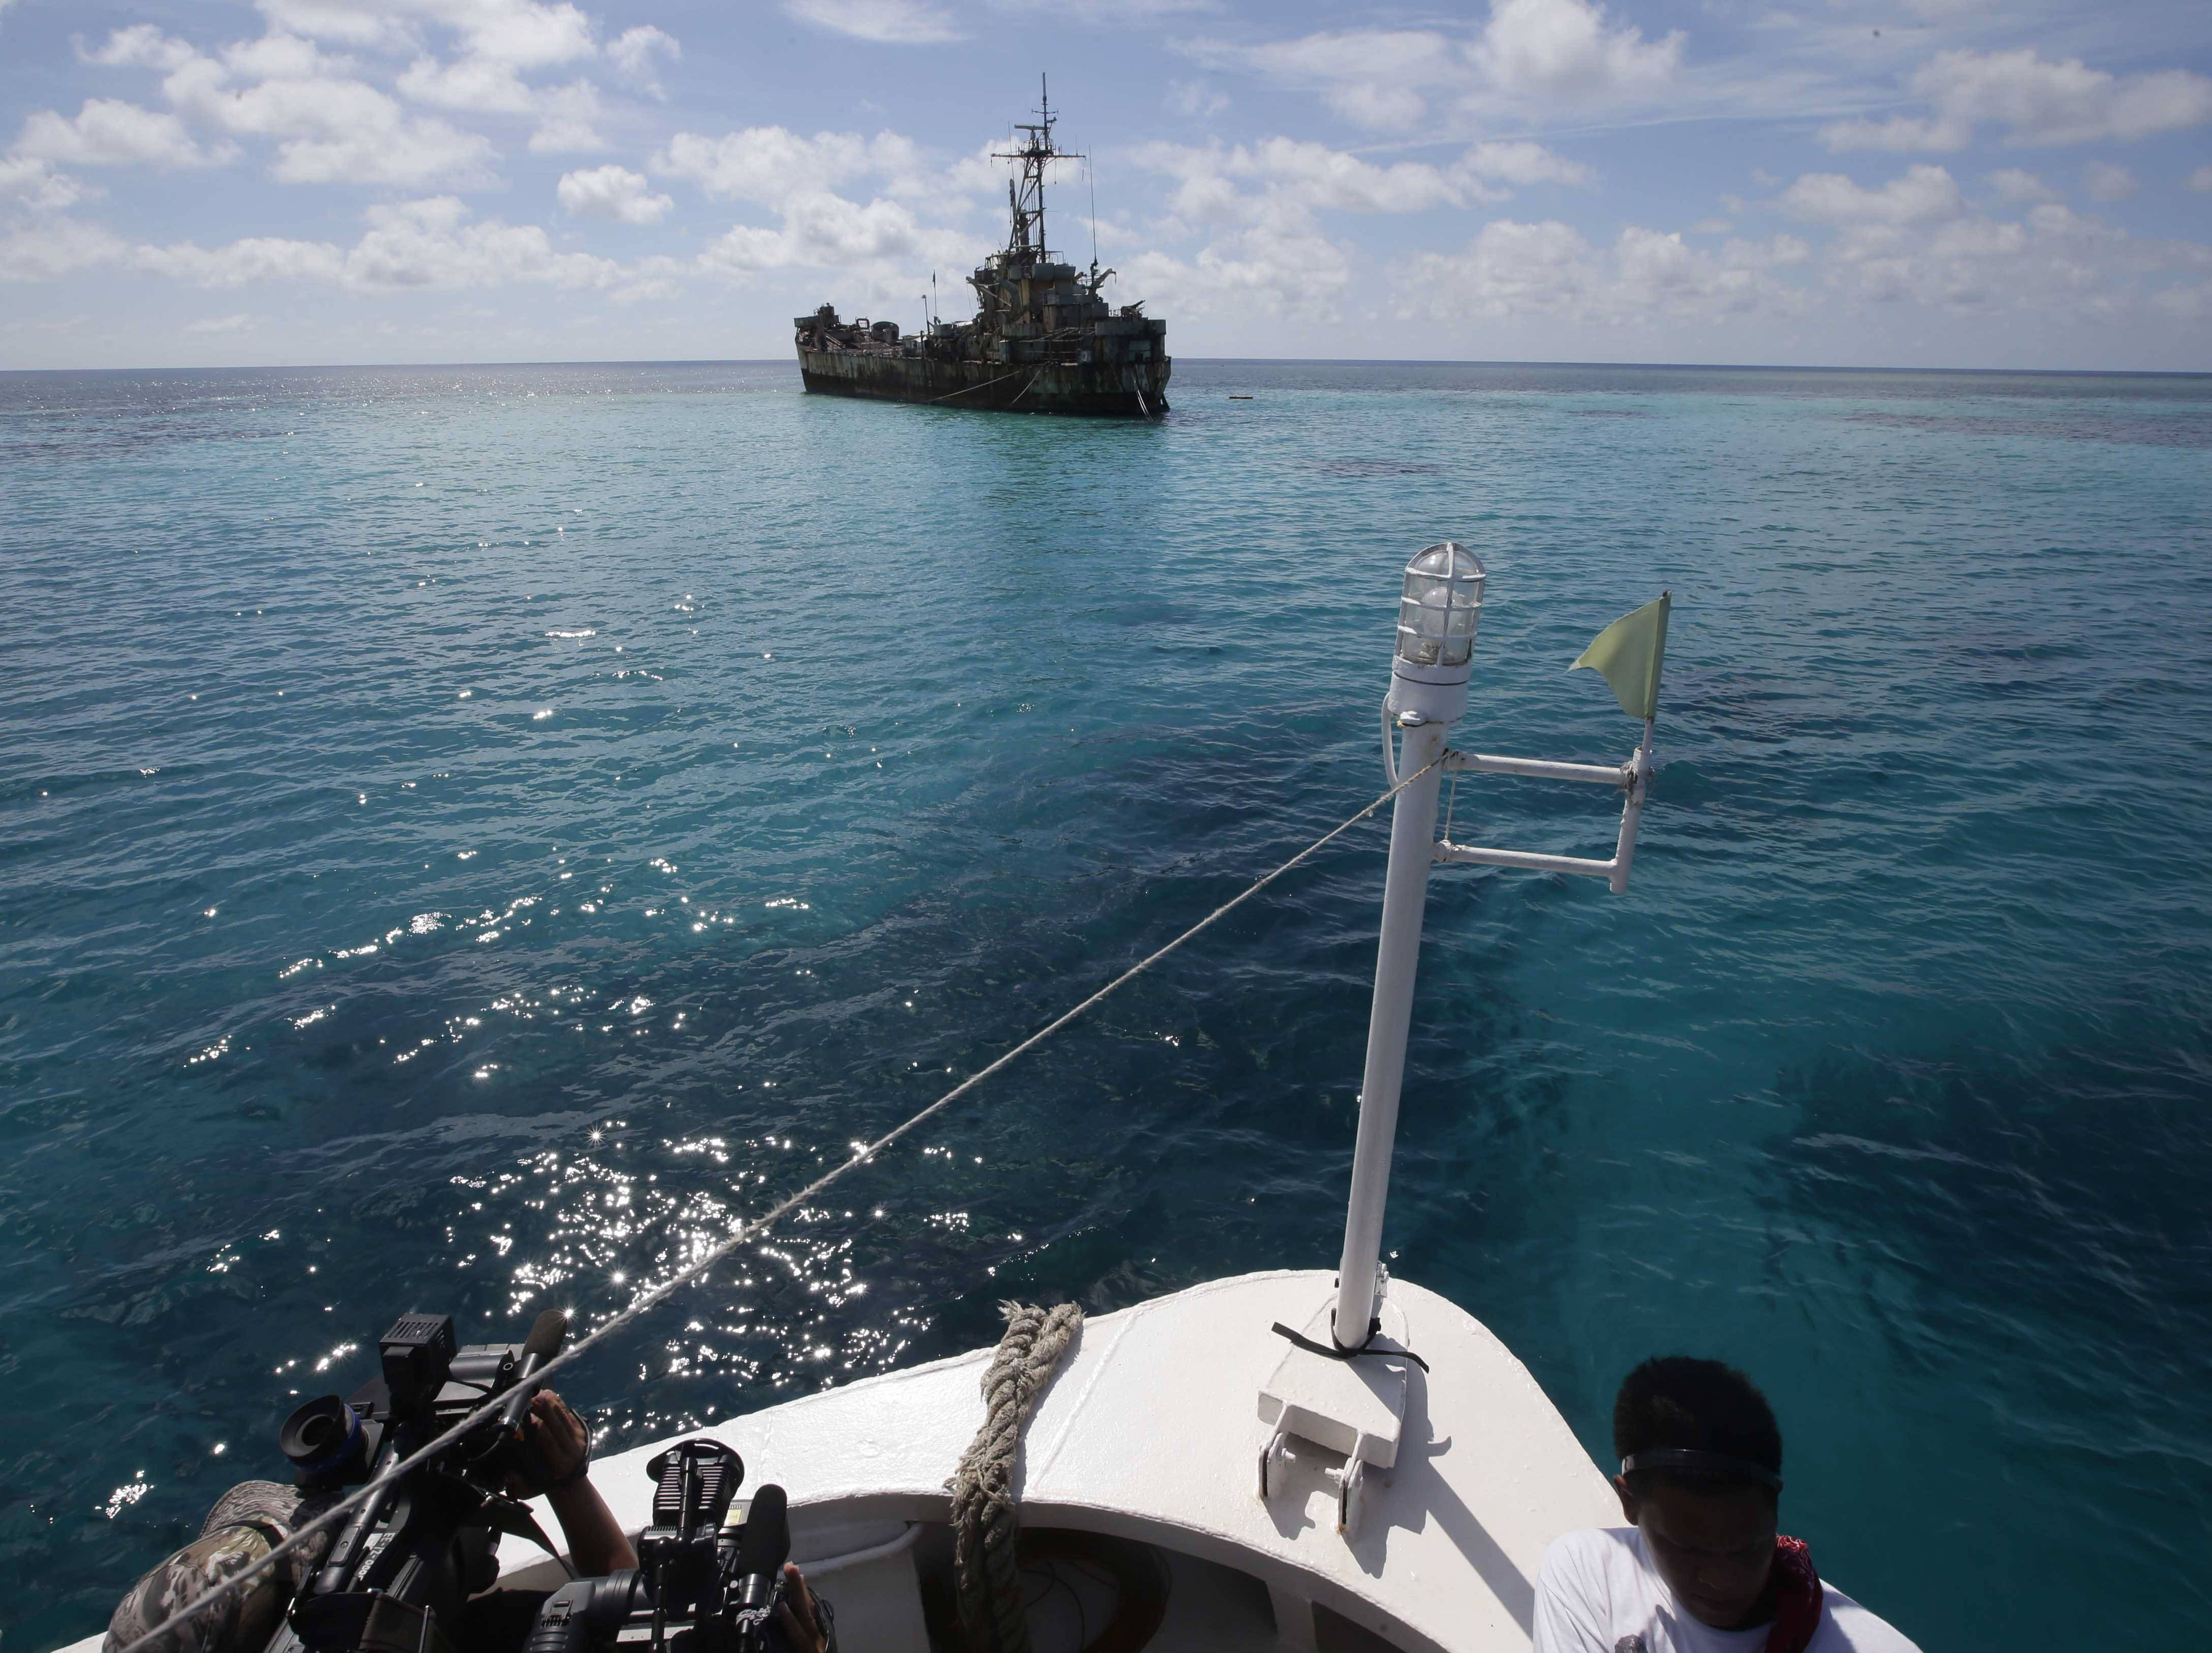 A dilapidated Philippine Navy ship LT 57 (Sierra Madre) with Philippine troops deployed on board is anchored Saturdsy off Second Thomas Shoal in the South China Sea. An hour from the shoal, the Chinese coast guard ship closed in on the Philippines supply vessel and twice crossed its bow.